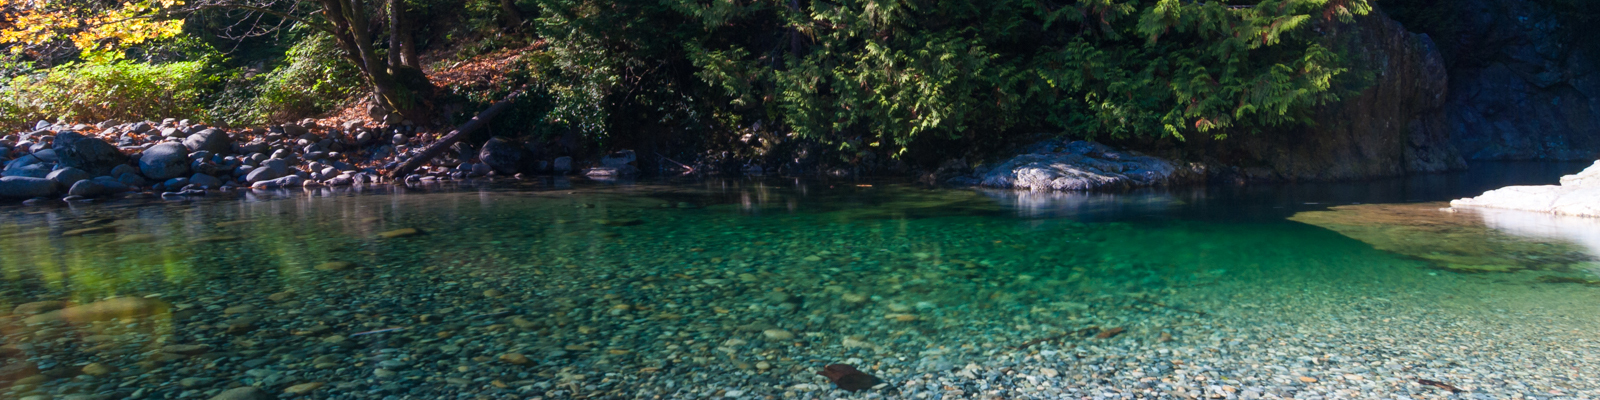 30 foot pool lynn canyon park suspension bridge in for 30 ft garden pool